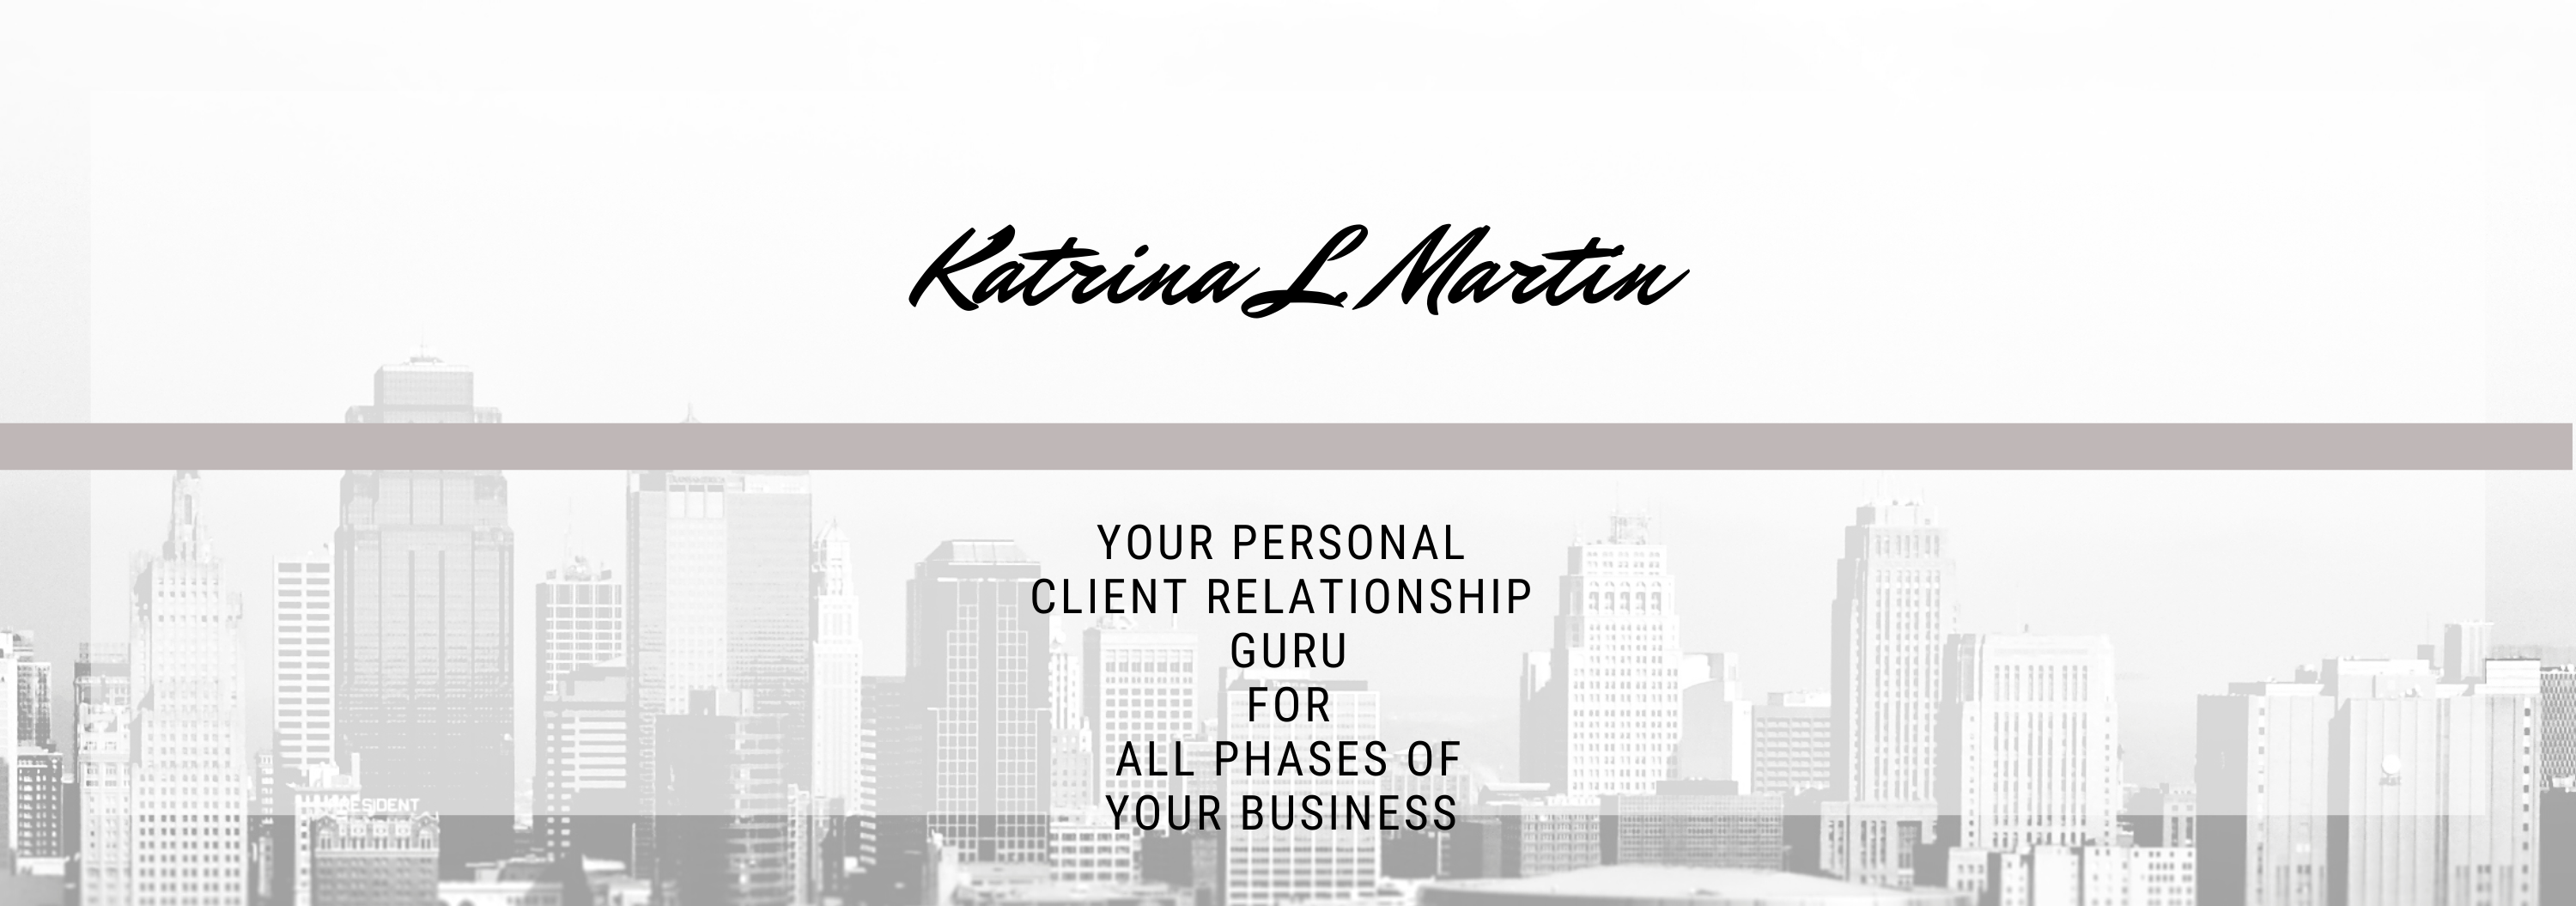 Katrina L. Martin marketing consultant